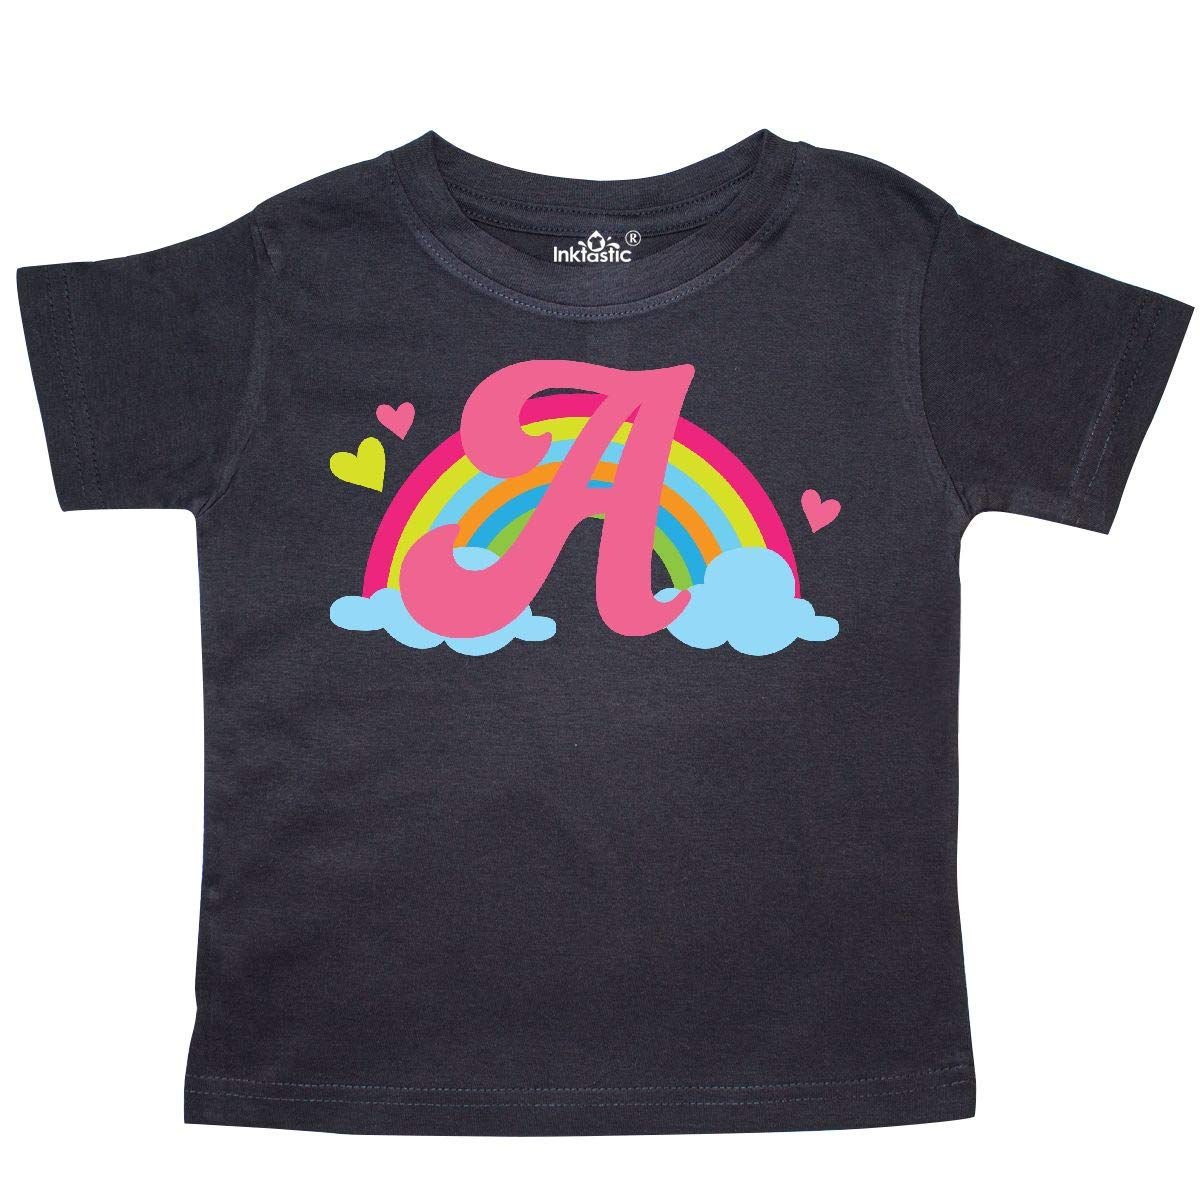 inktastic Monogram Letter a Rainbow Toddler T-Shirt